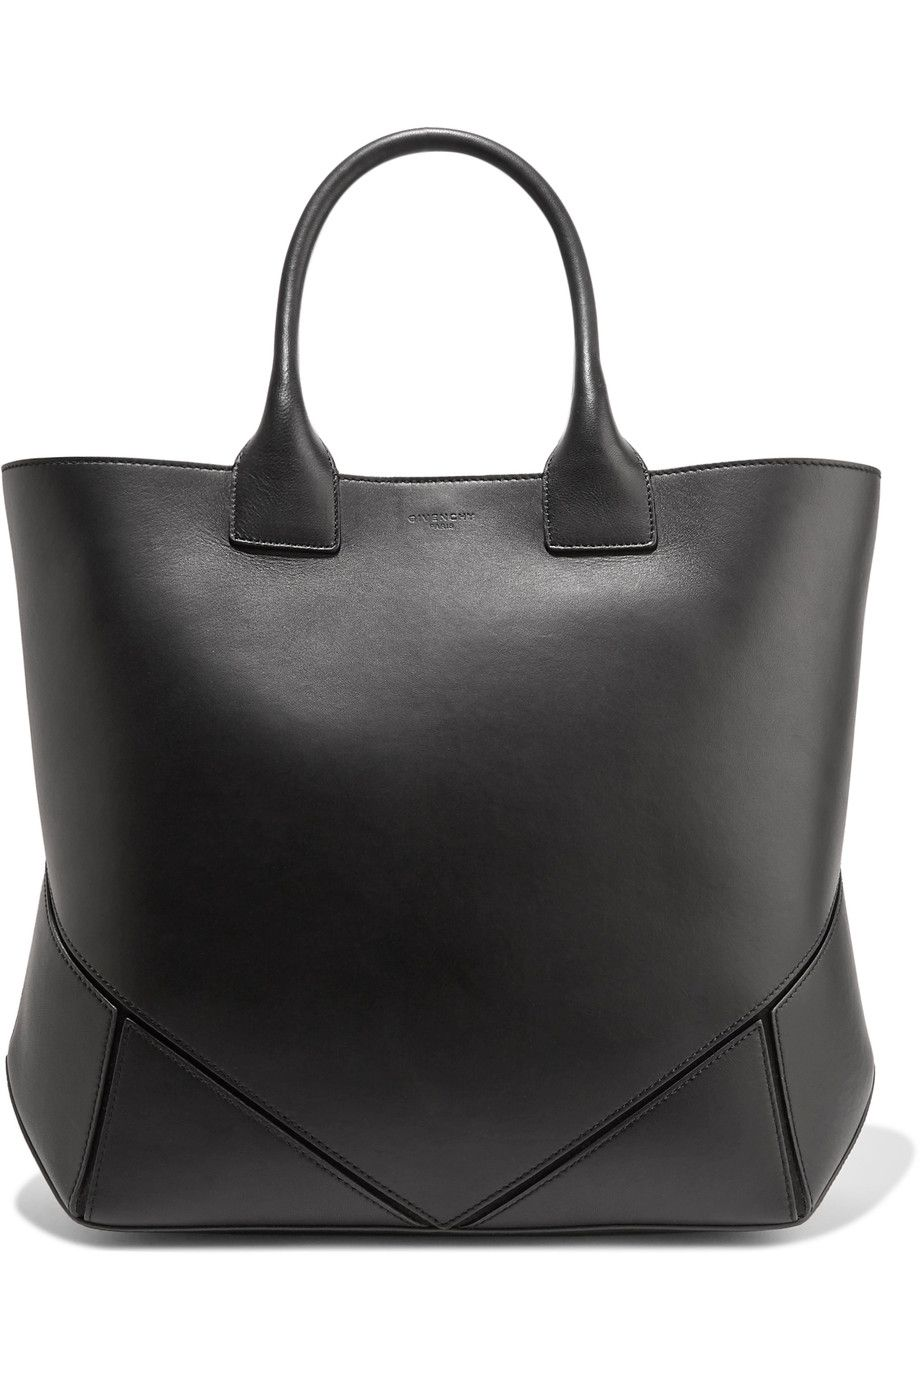 5cfccabfd0cb GIVENCHY Leather Tote.  givenchy  bags  hand bags  suede  tote ...